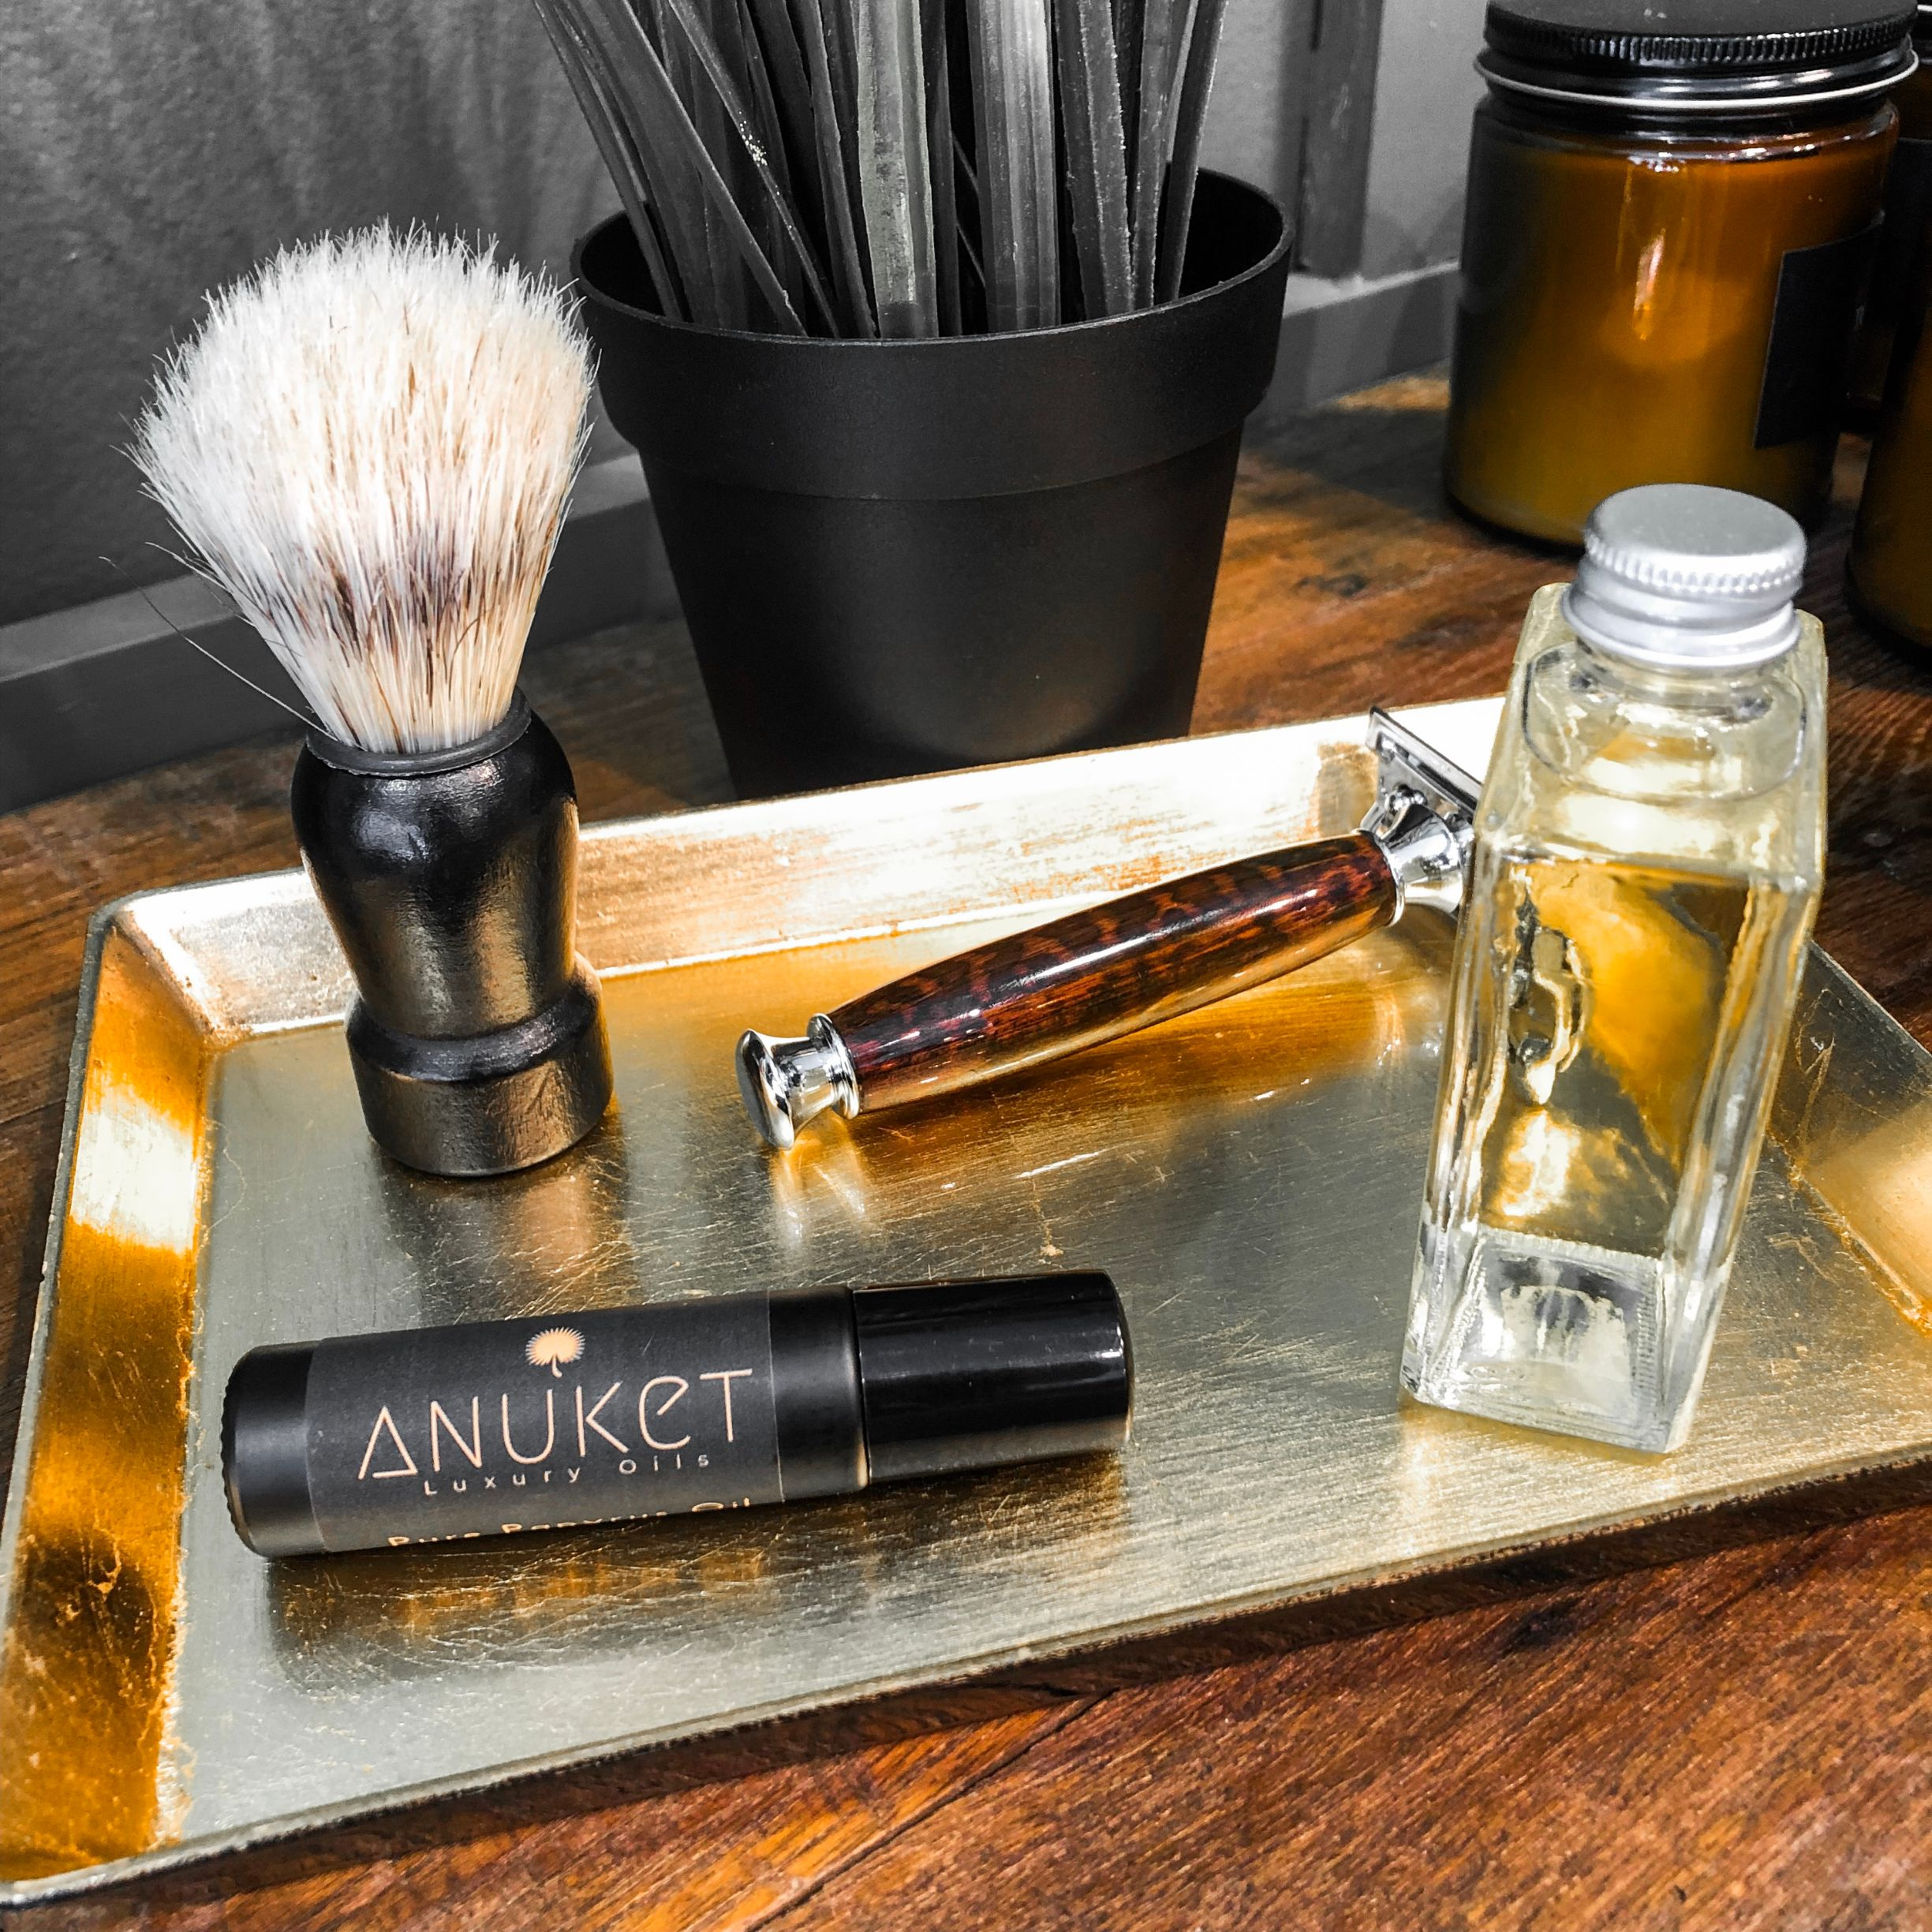 Image of Anuket's Signature Scent, Papyrus Oil, on a gold tray with an old fashioned shaving setup surrounded by a candle and plants